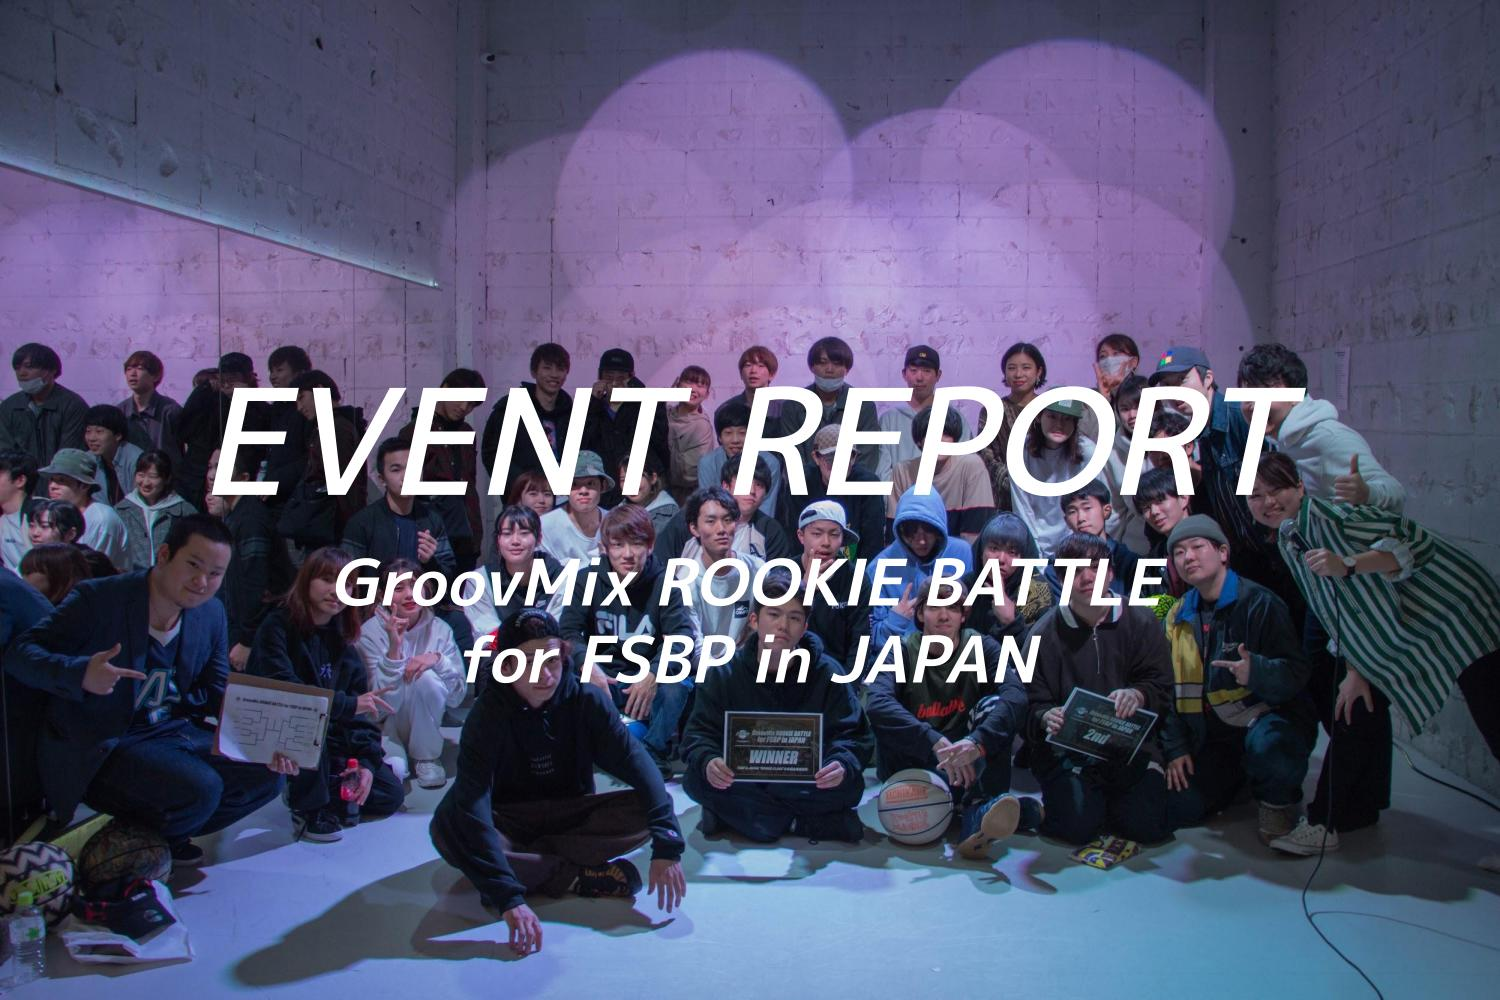 【Event Report】<br>GroovMix ROOKIE BATTLE for FSBP in JAPAN